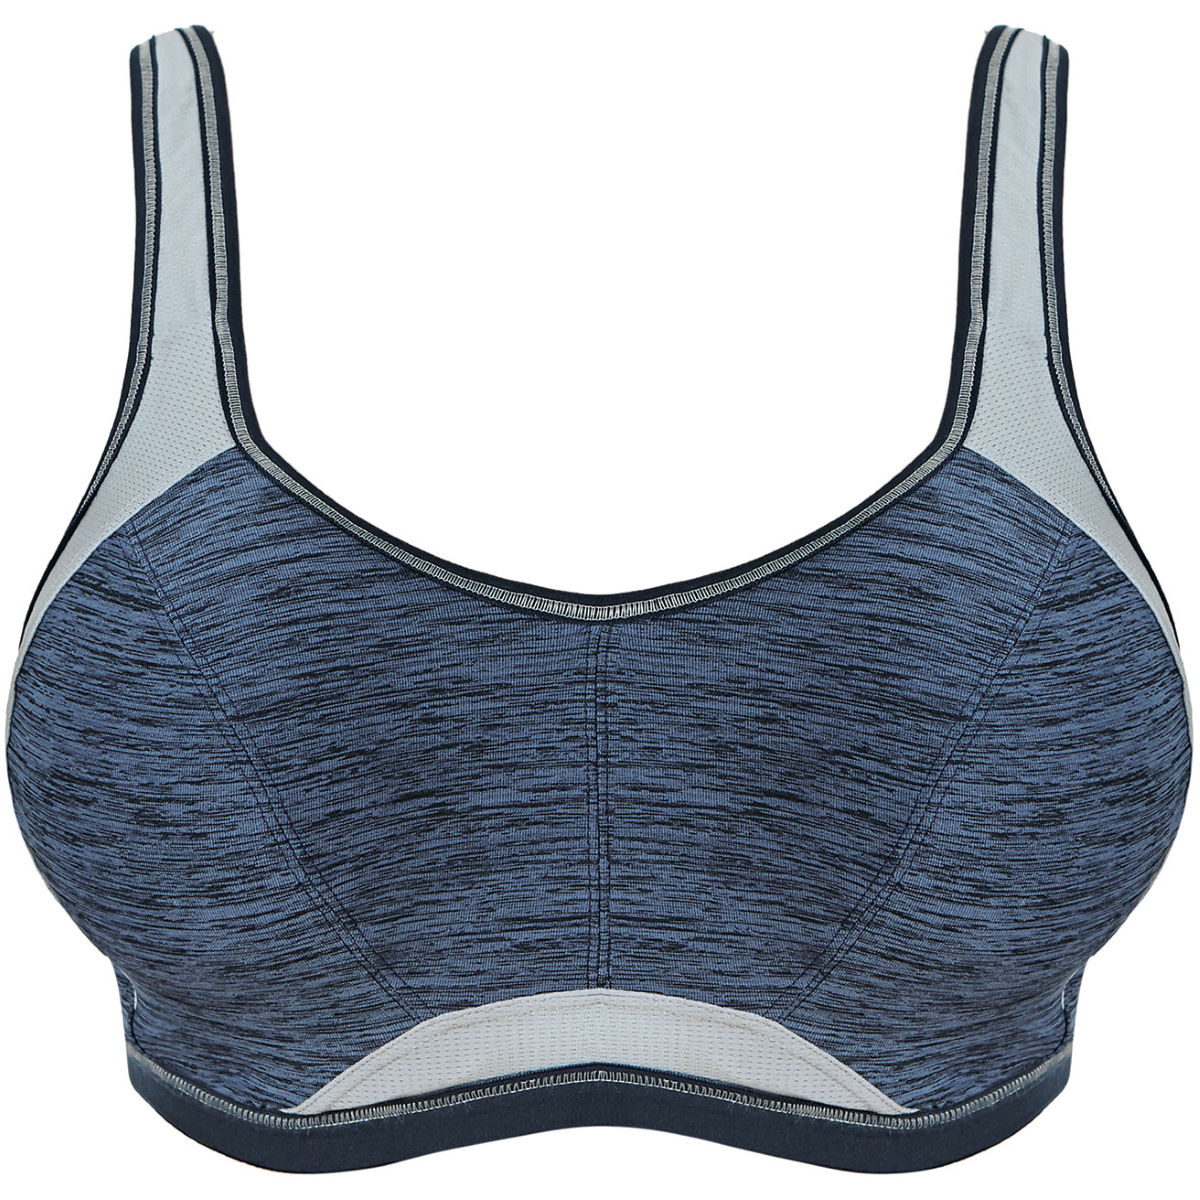 Image of Brassière de sport Freya Active Epic UW Crop Top - 28 E